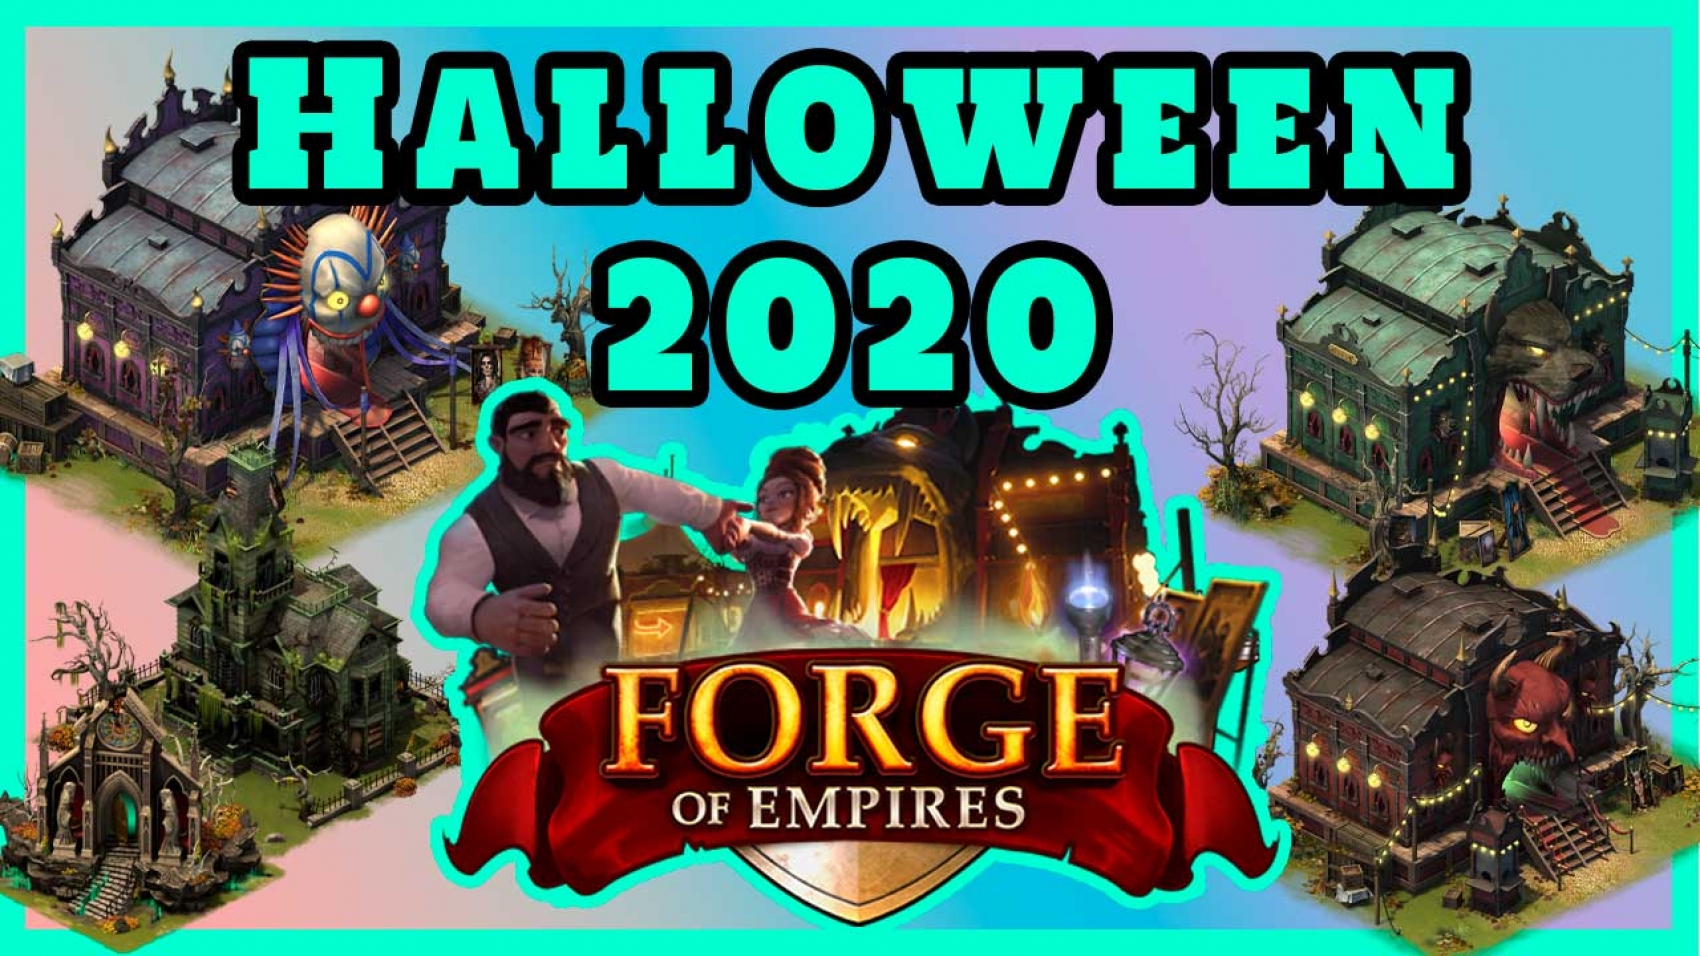 forge of empires halloween 2020